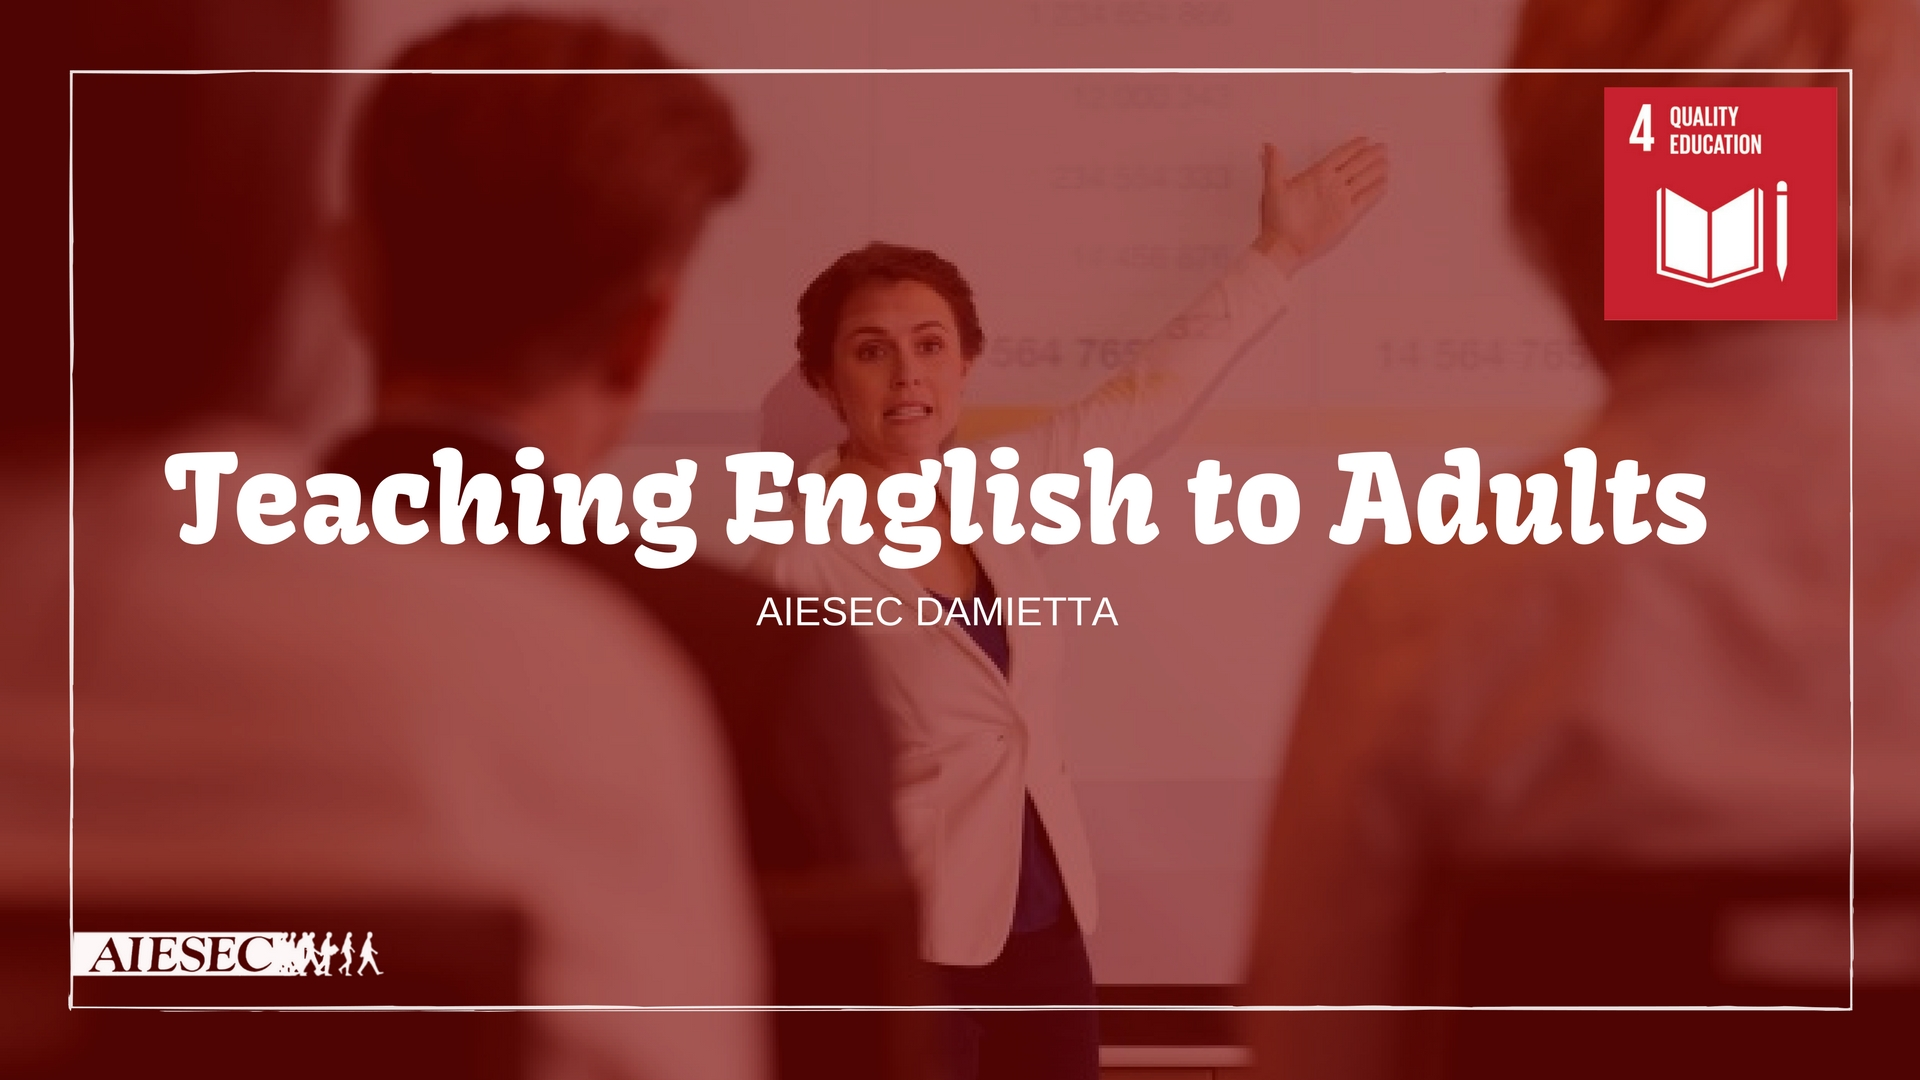 Teaching English To Adults for Quality Education